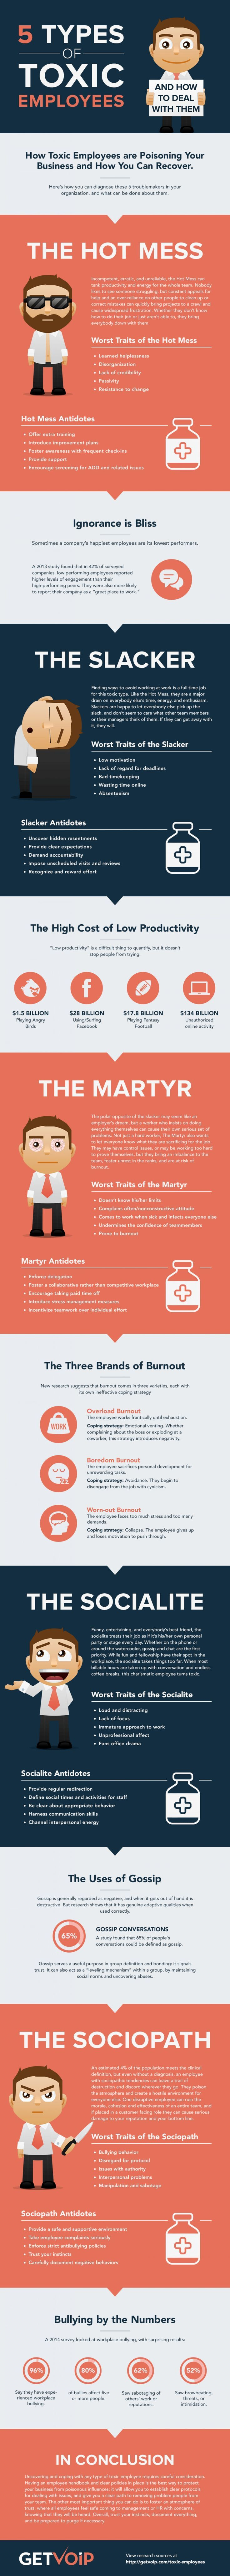 5 Types of Toxic Employees and How to Deal with Them [Infographic] Infographic. If you like UX, design, or design thinking, check out theuxblog.com